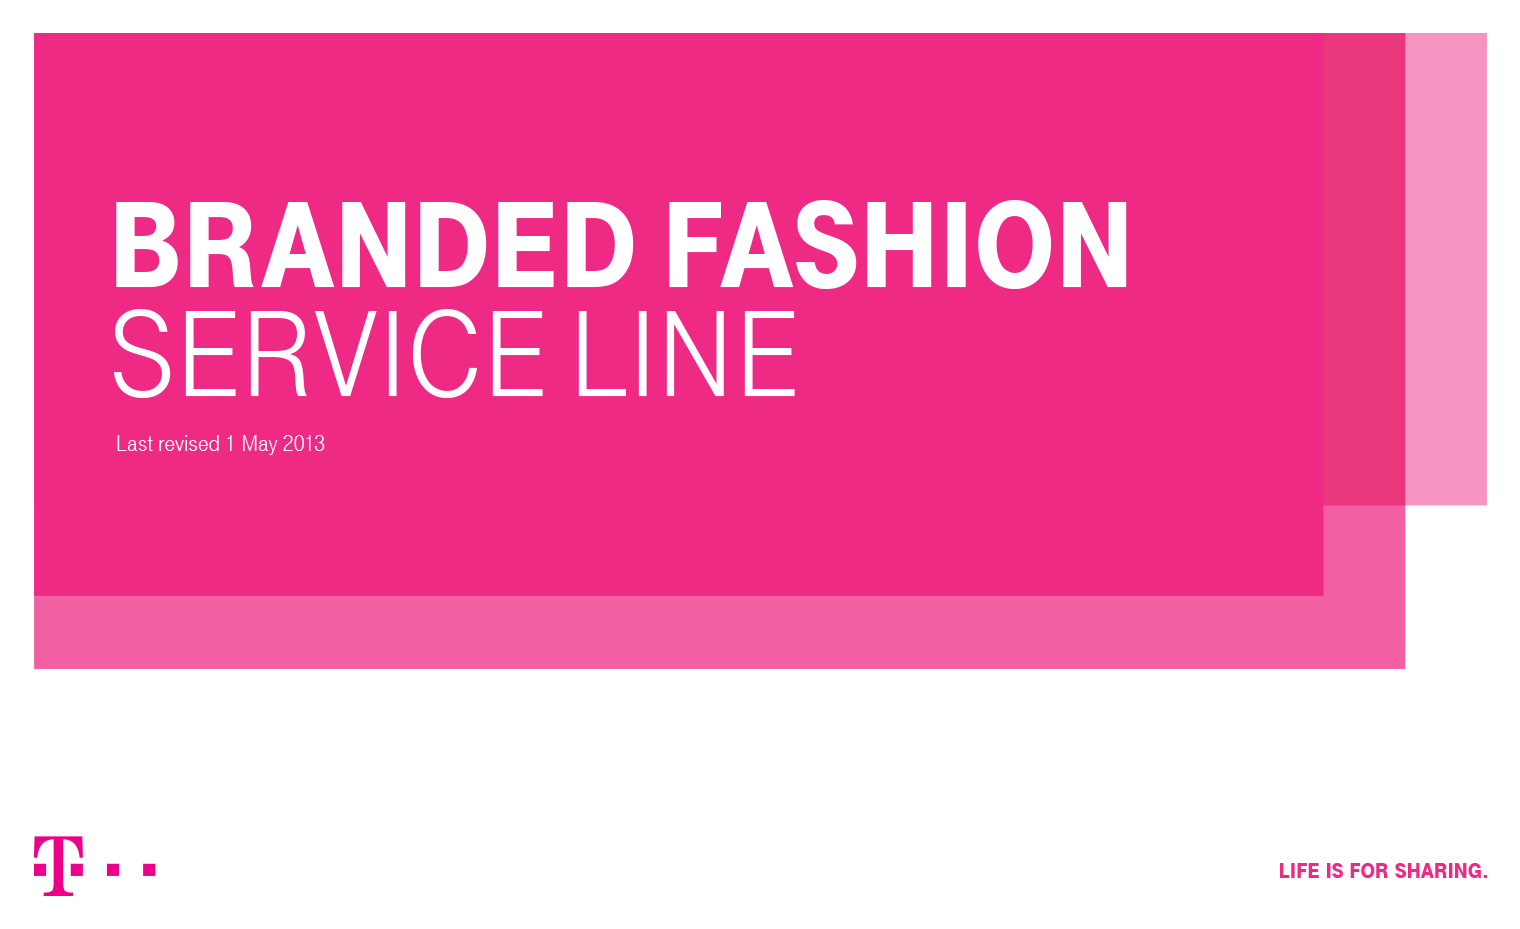 field-guideline-branded-fashion-service-line-style-guide-deutsche-telekom-tmobile